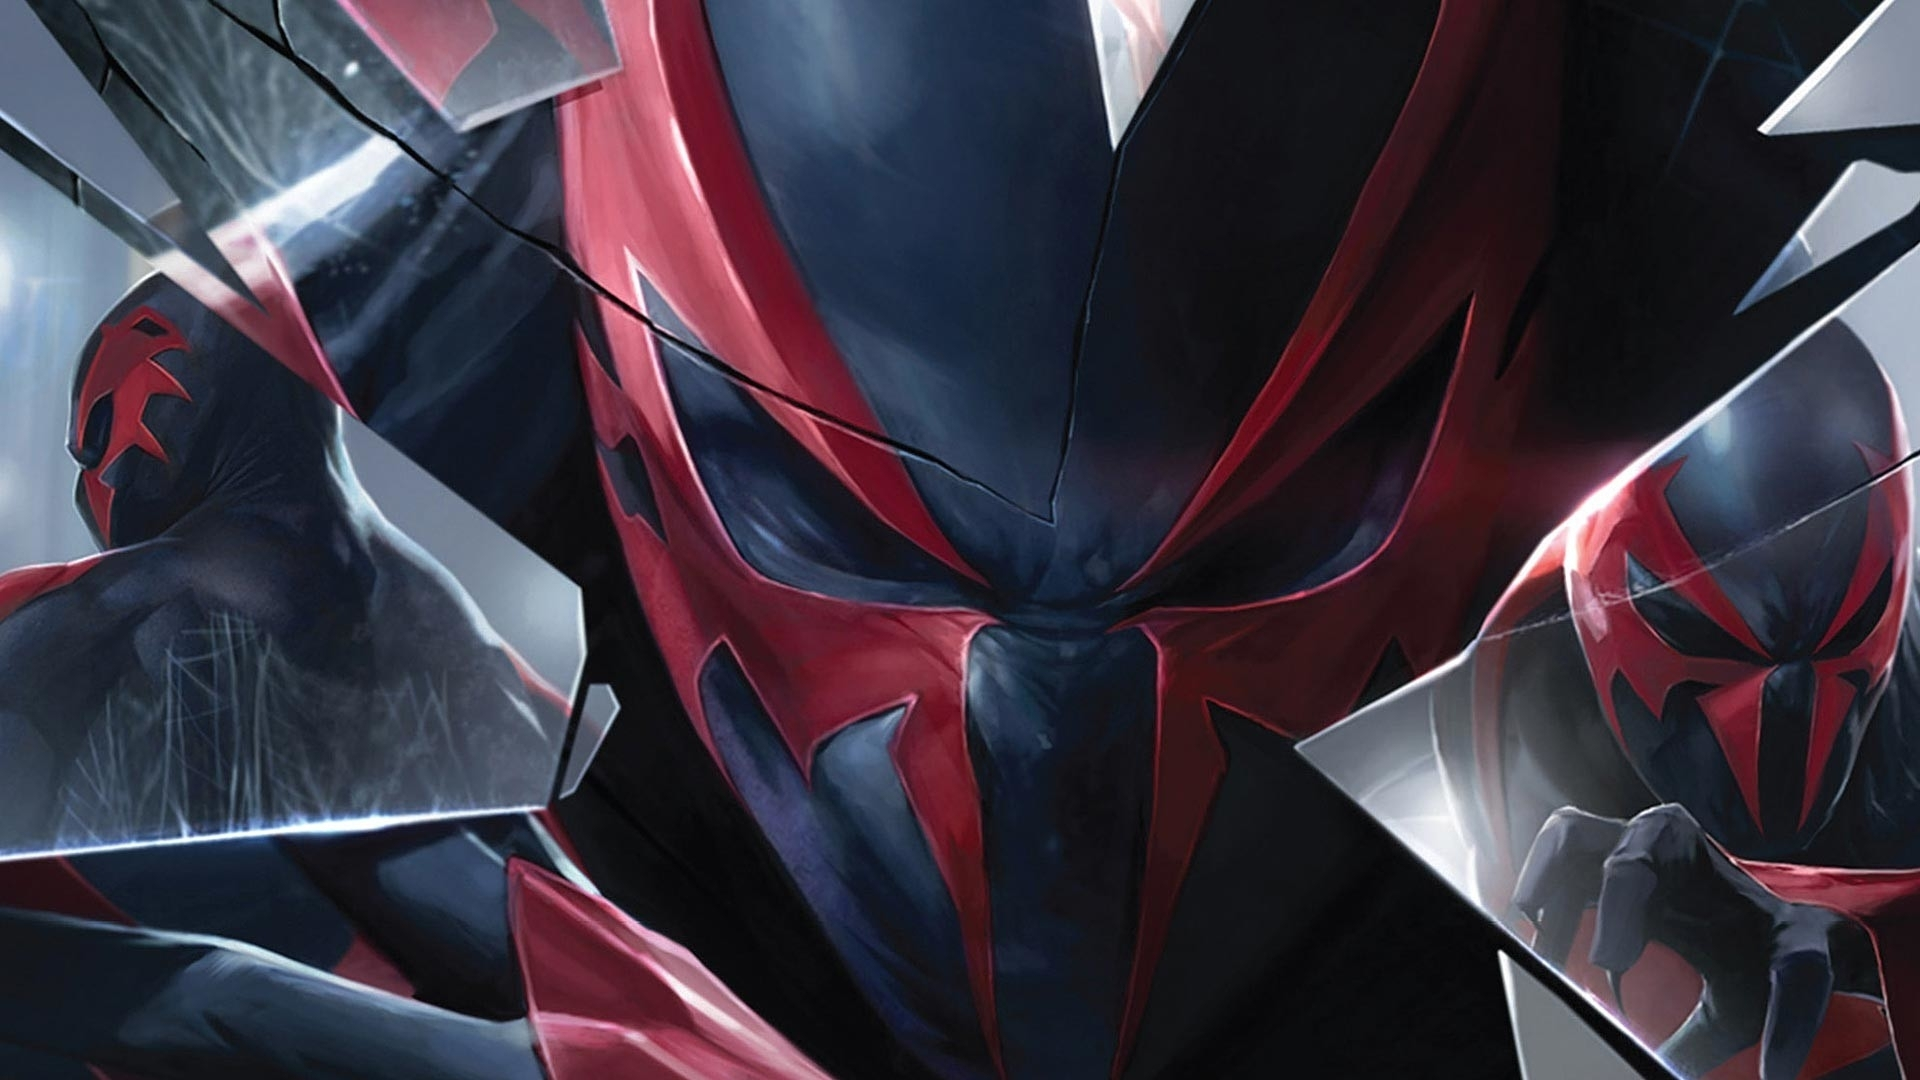 spider man 2099 hd wallpaper (78+ images)